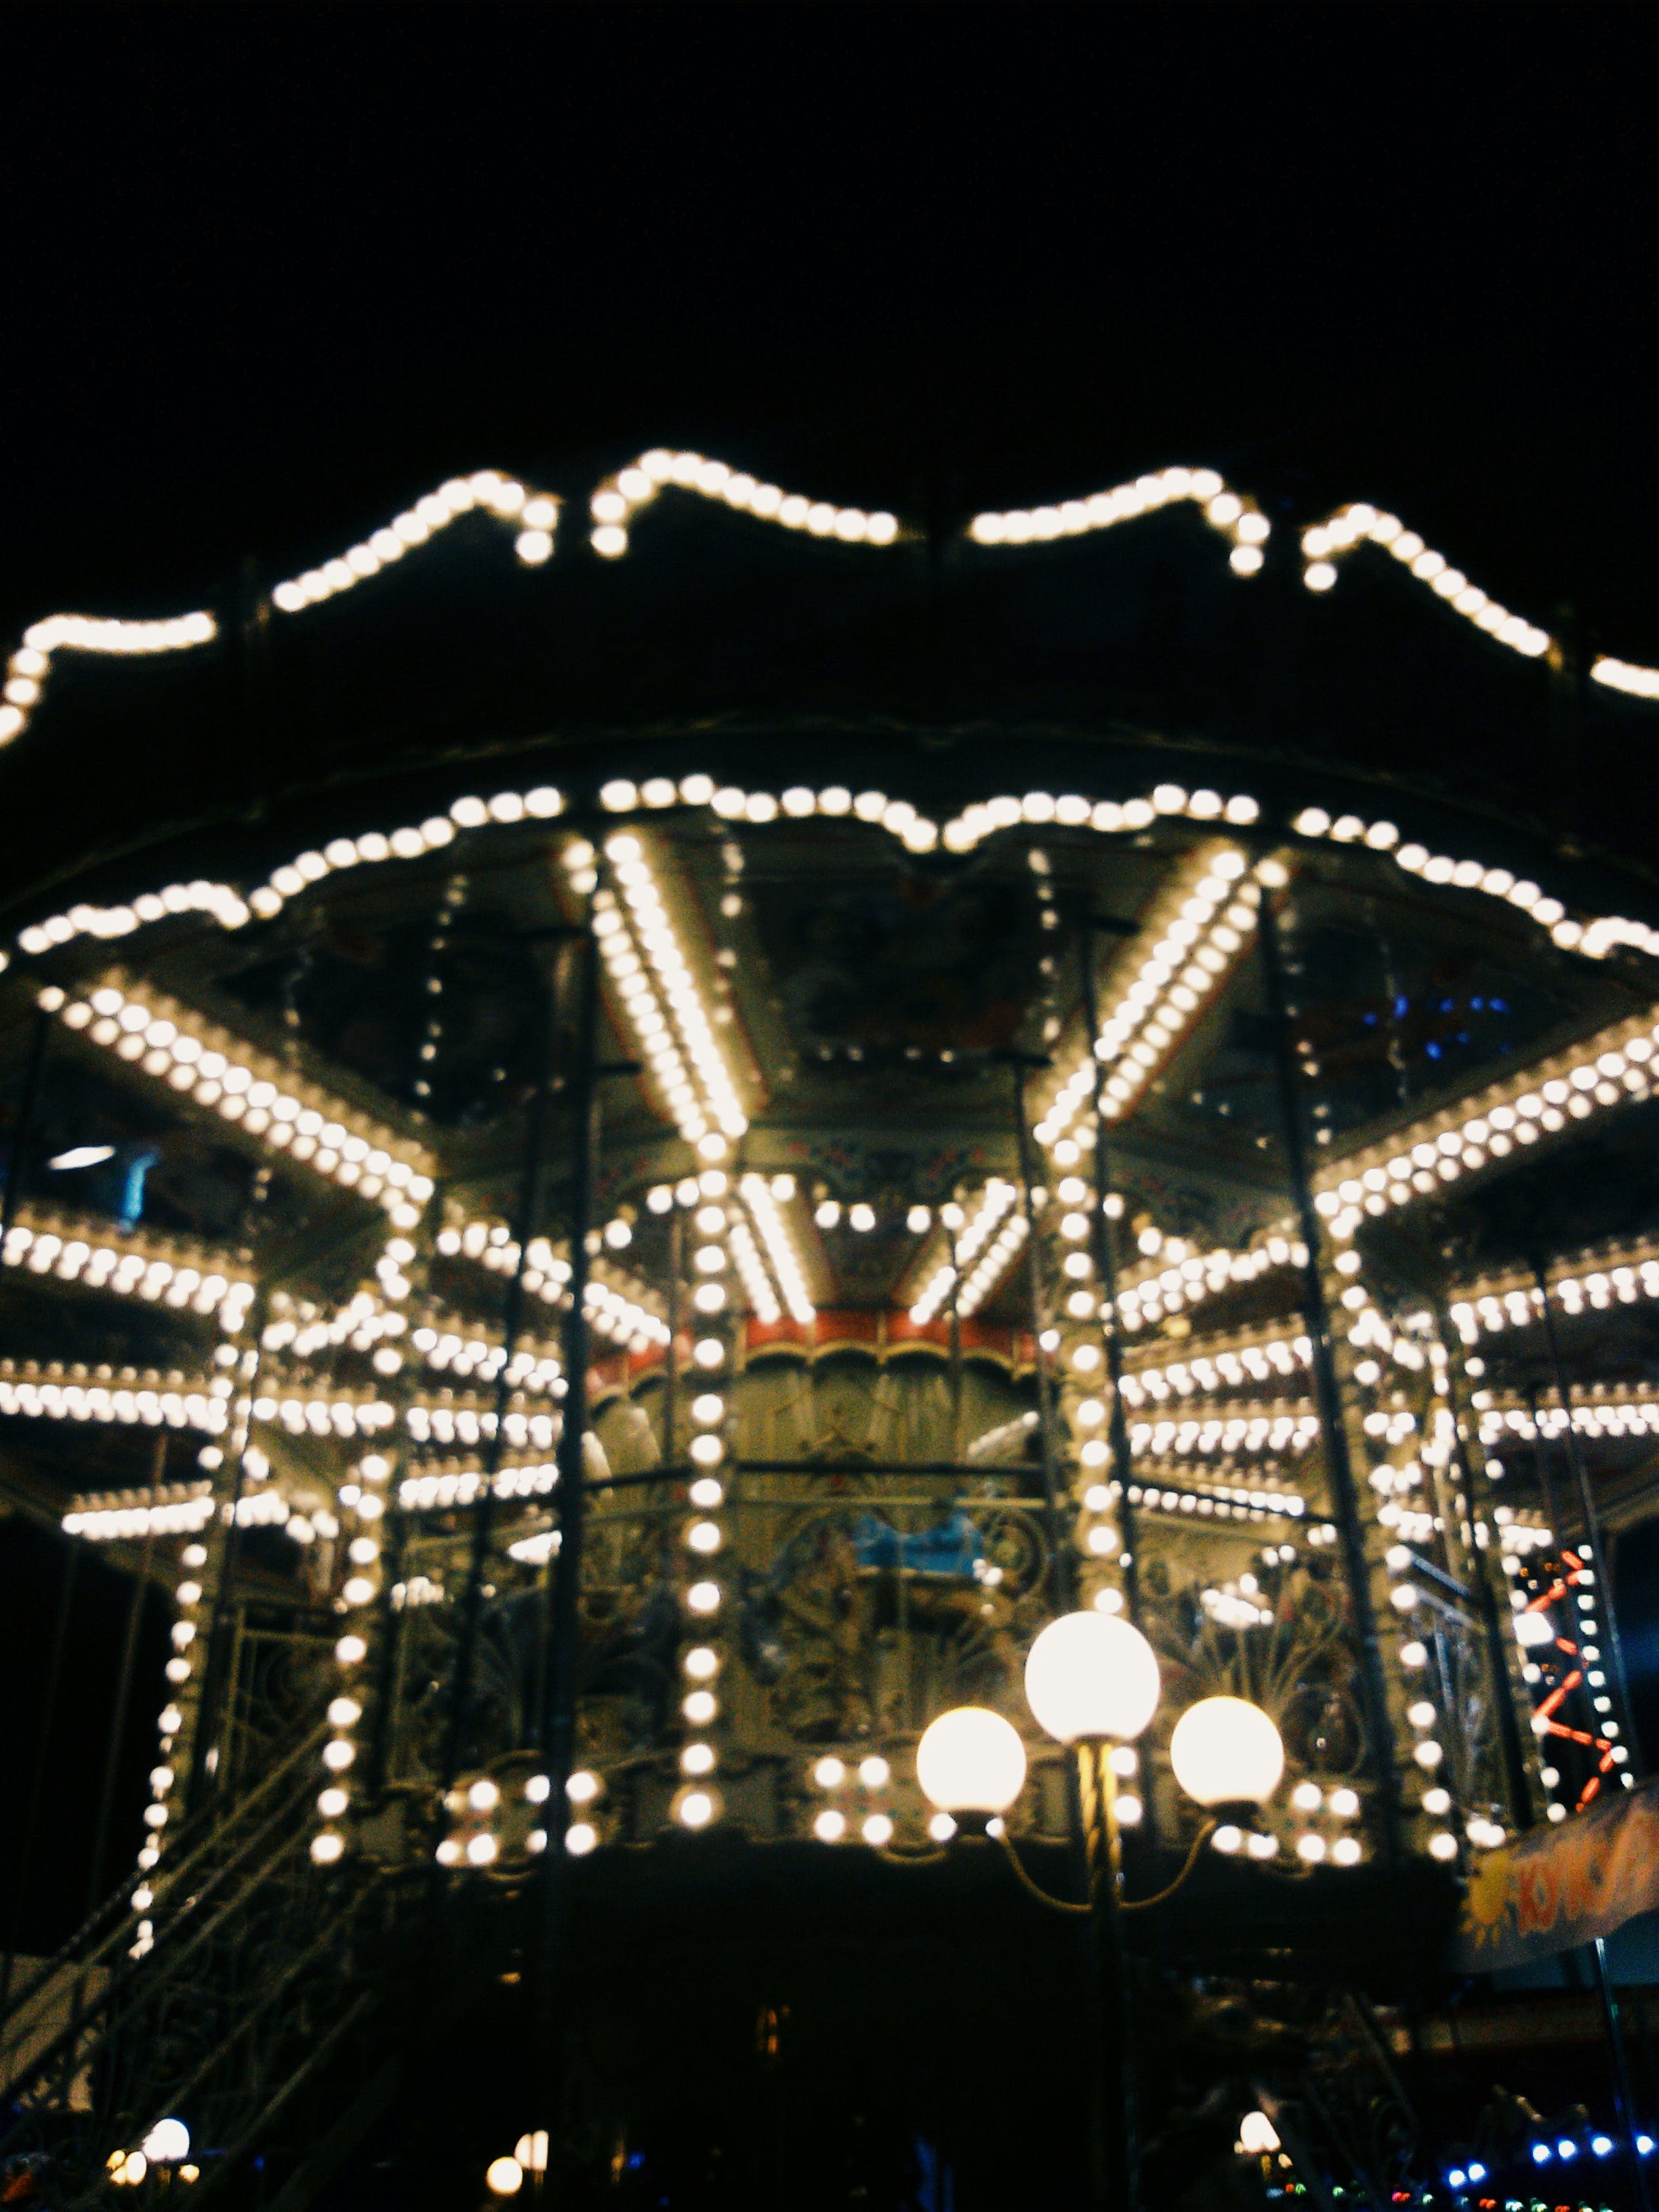 Free stock photo of #carousel, #evening, #latern, #light